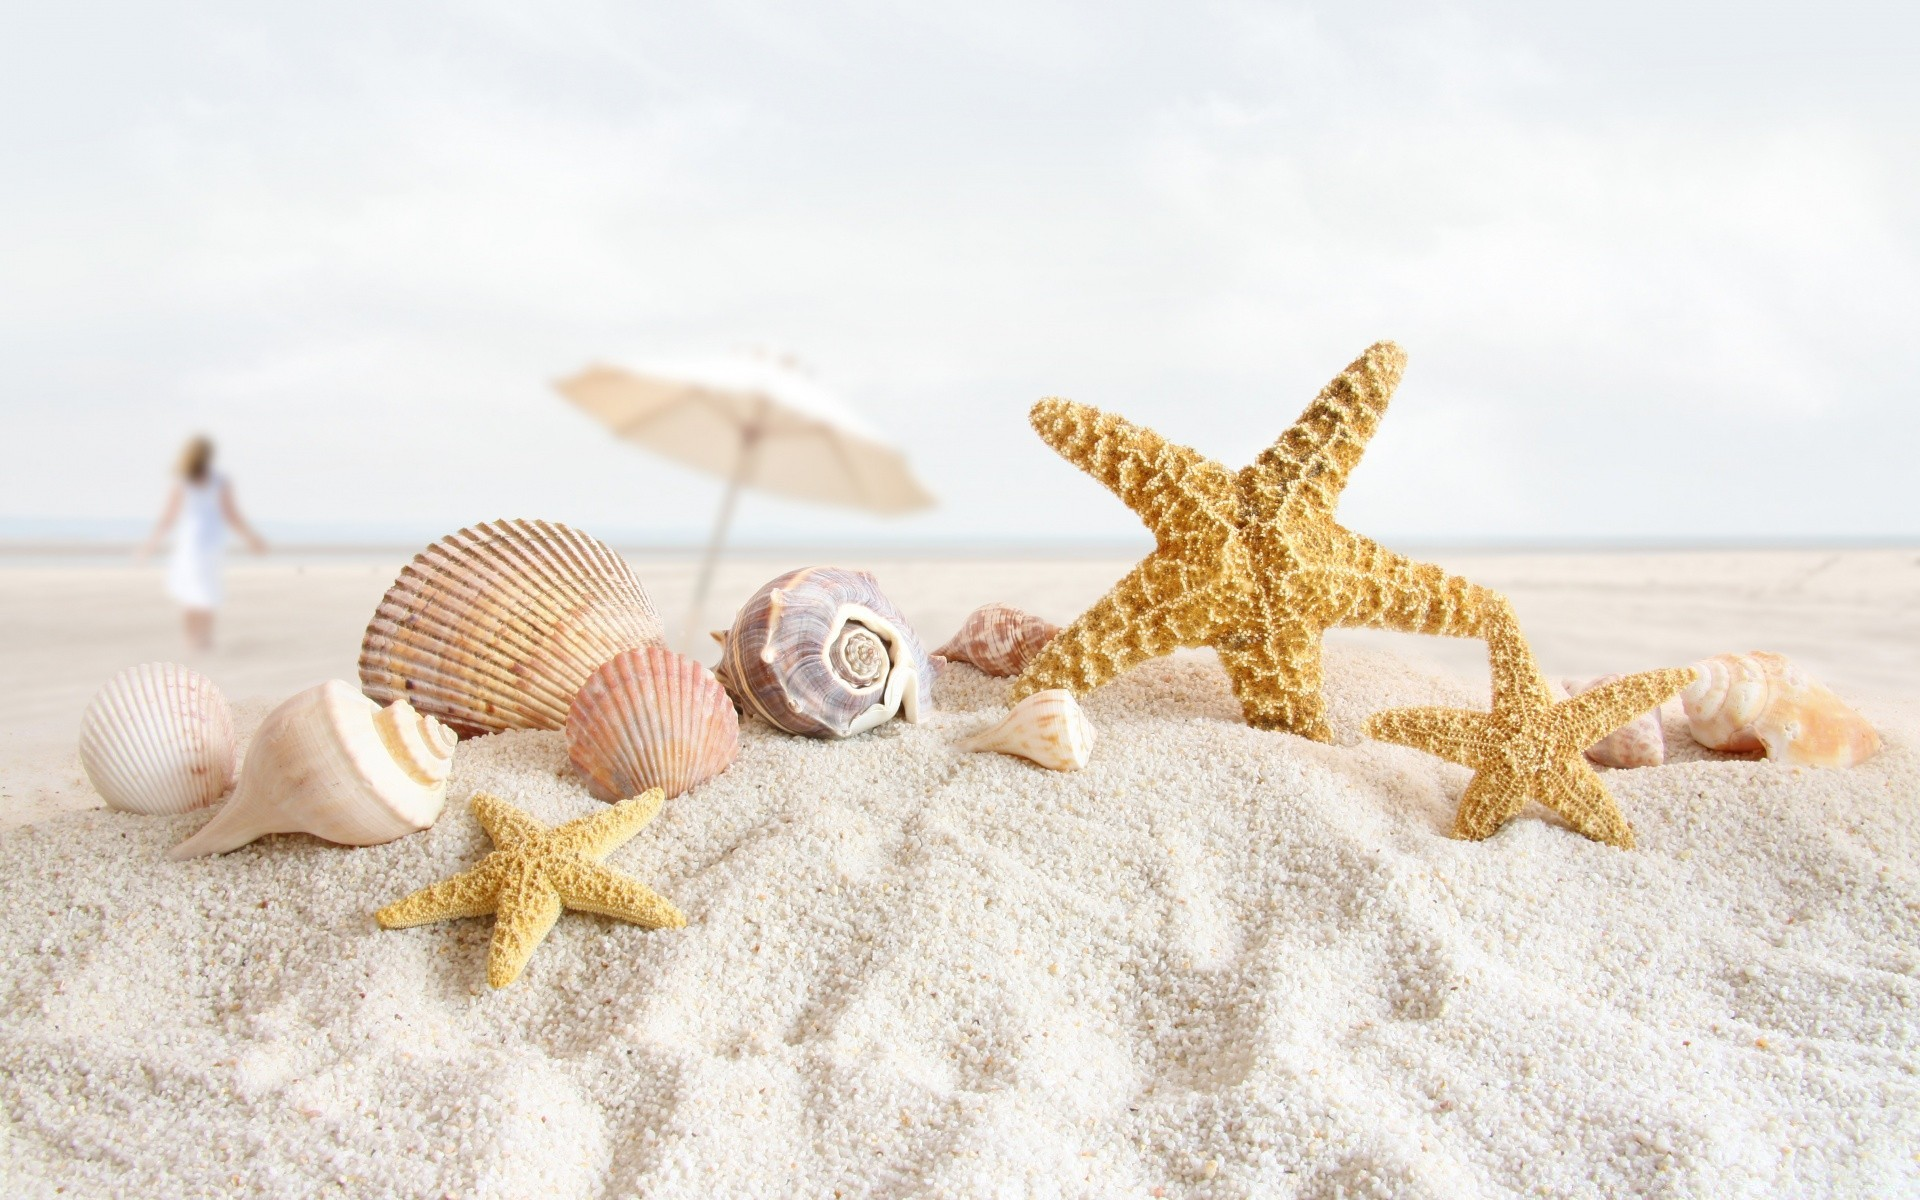 Seashells And Starfish On The Beach - Phone wallpapers